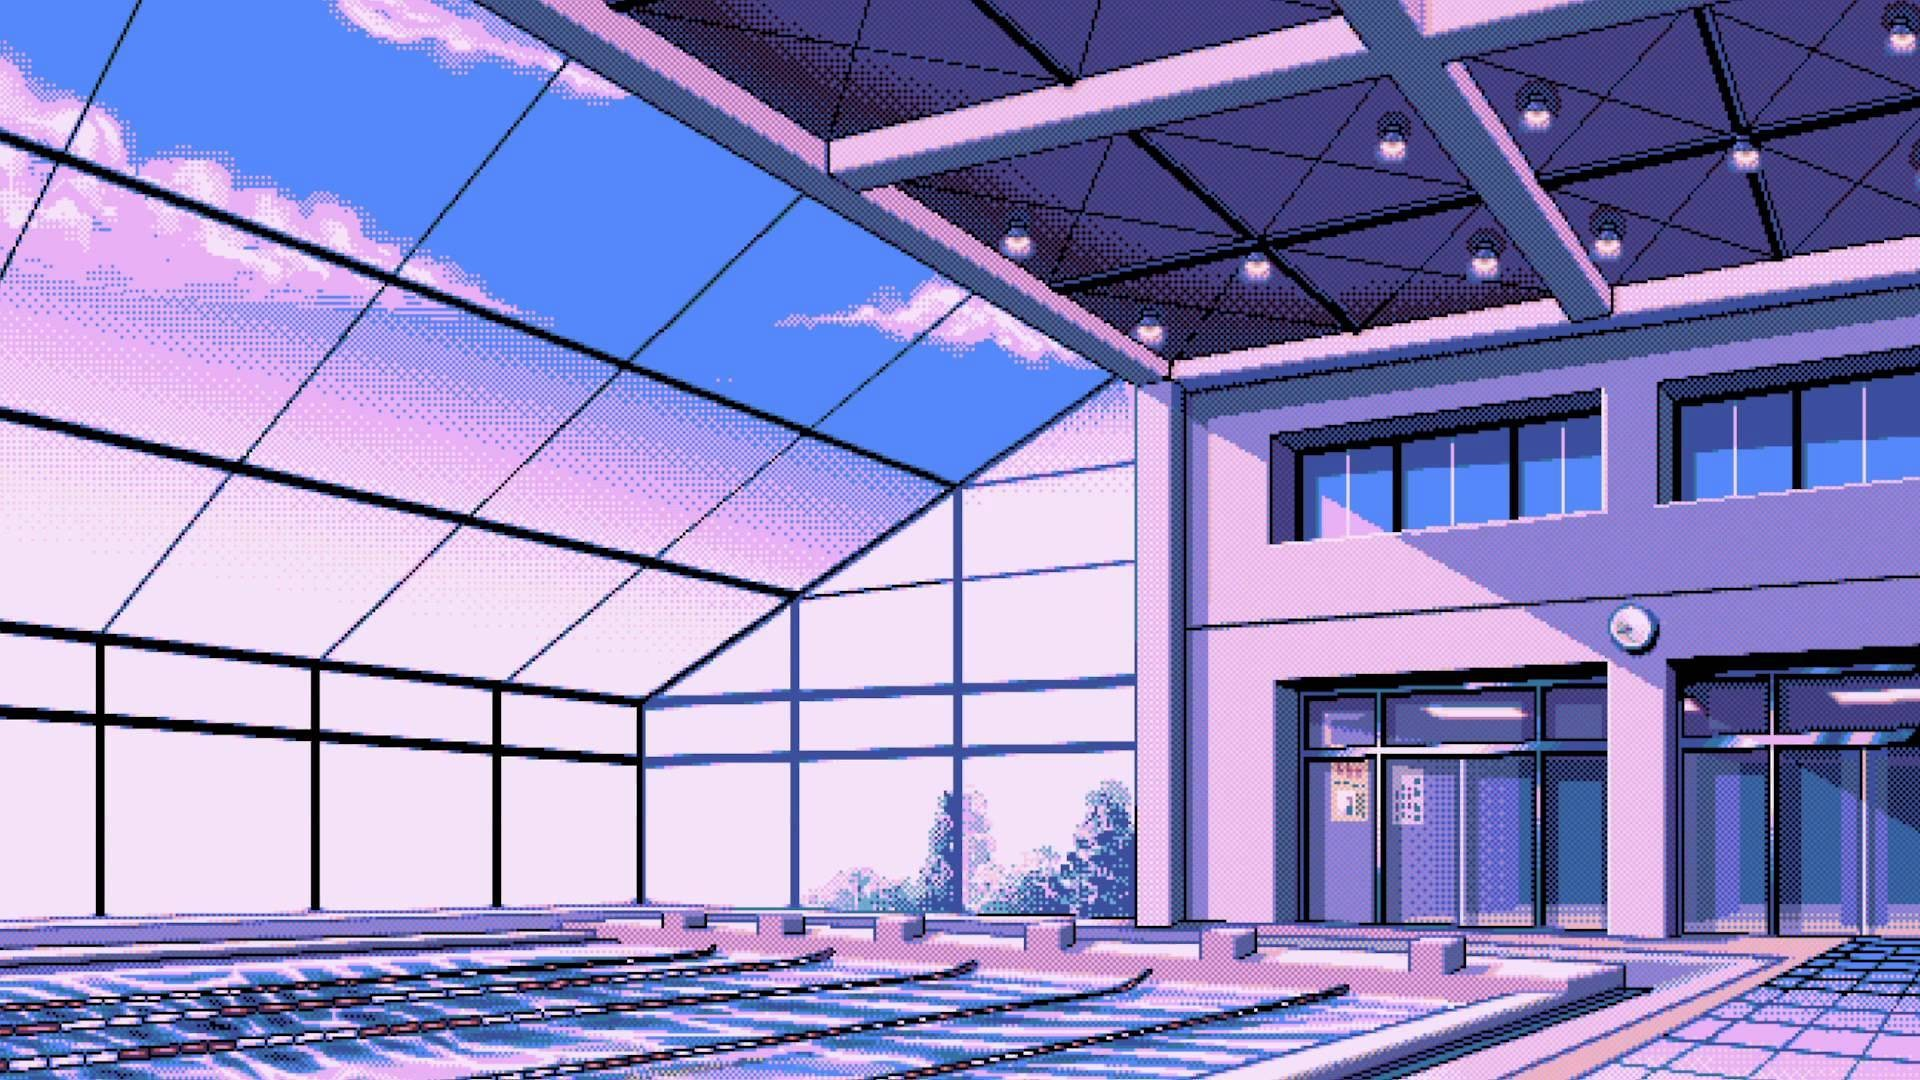 General 1920x1080 pixel art swimming pool window